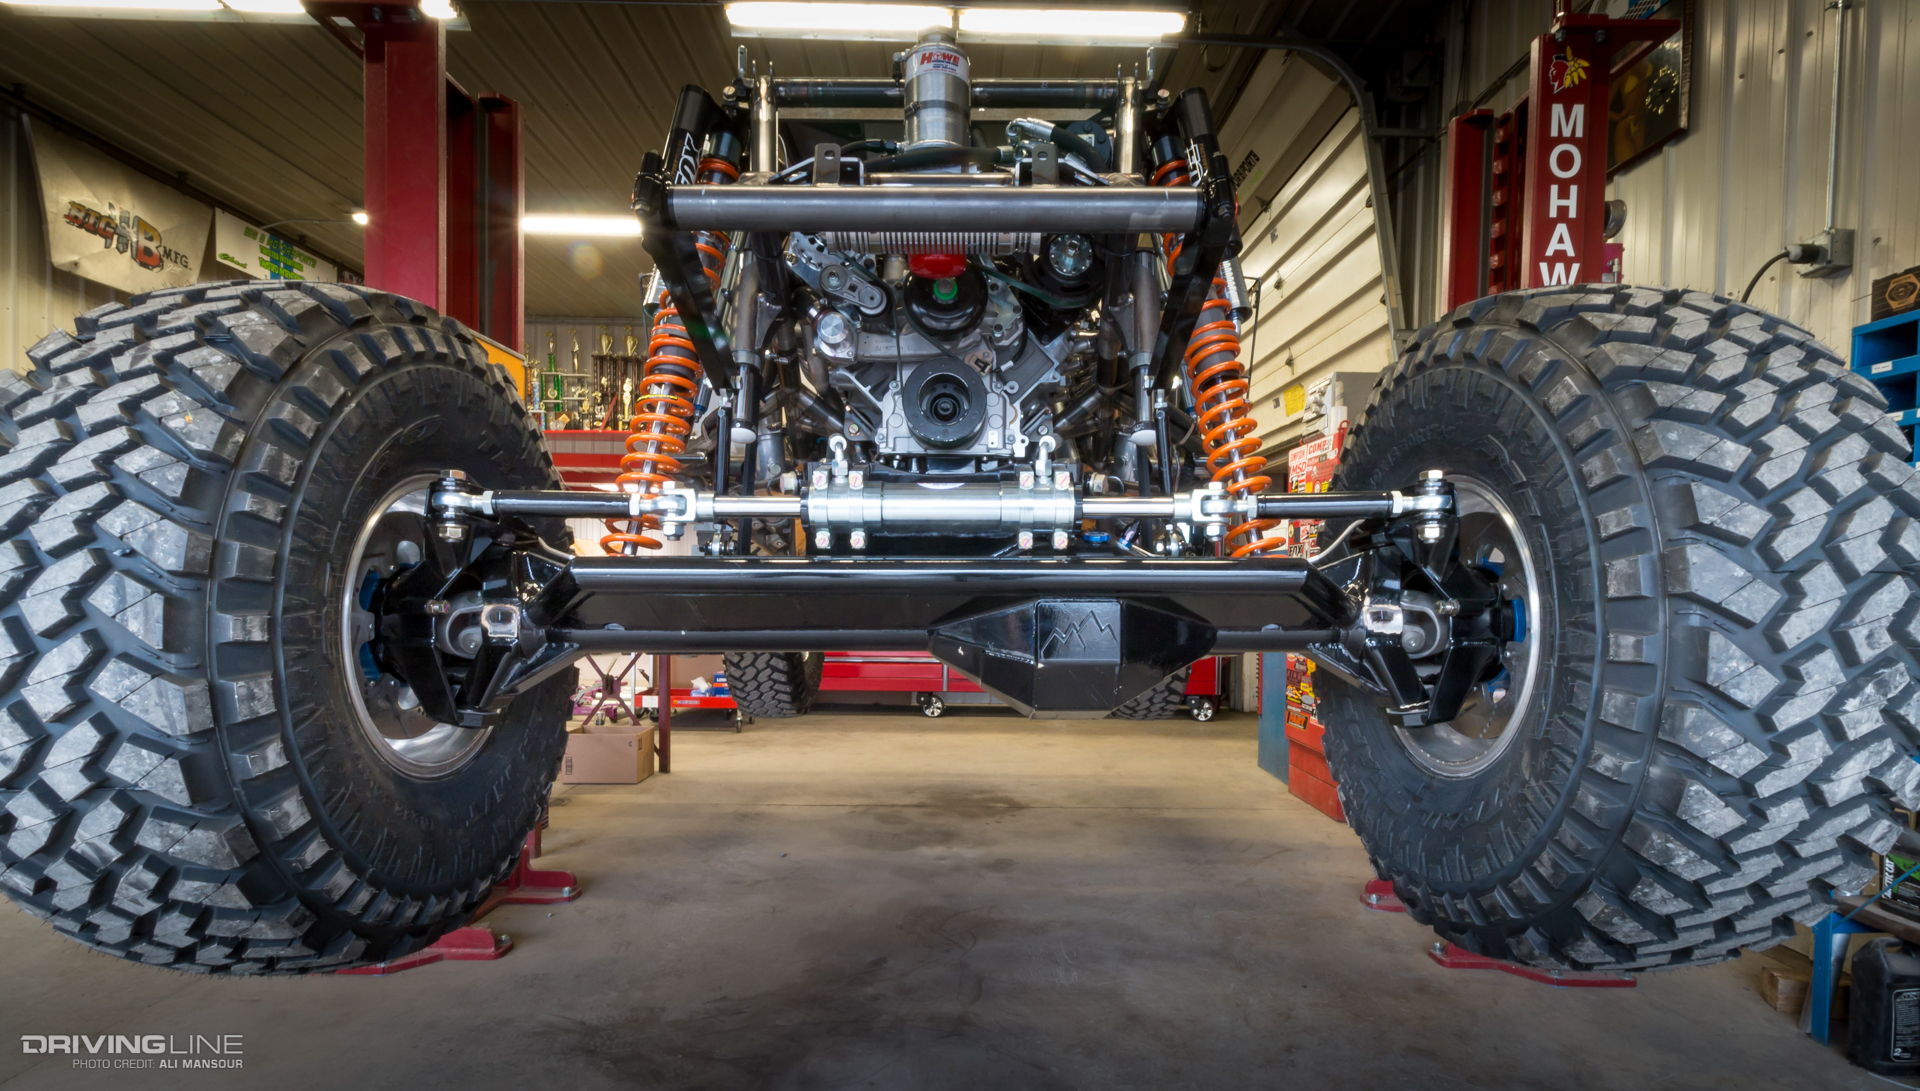 Cj7 Jeep For Sale >> Built for a King: Big B Motorsports LS Buggy | DrivingLine